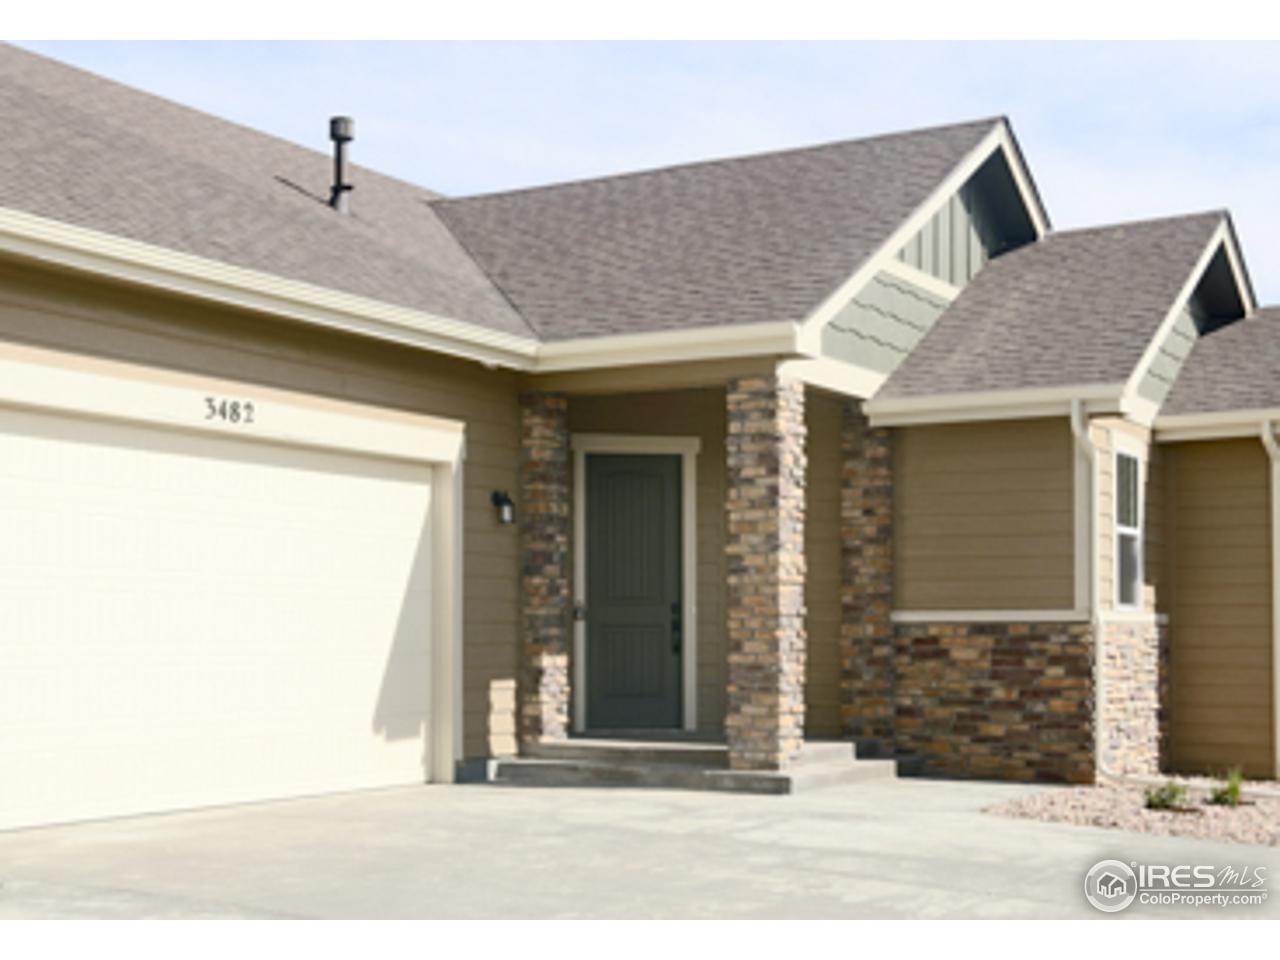 3482 Prickly Pear Dr, Loveland, CO 80537